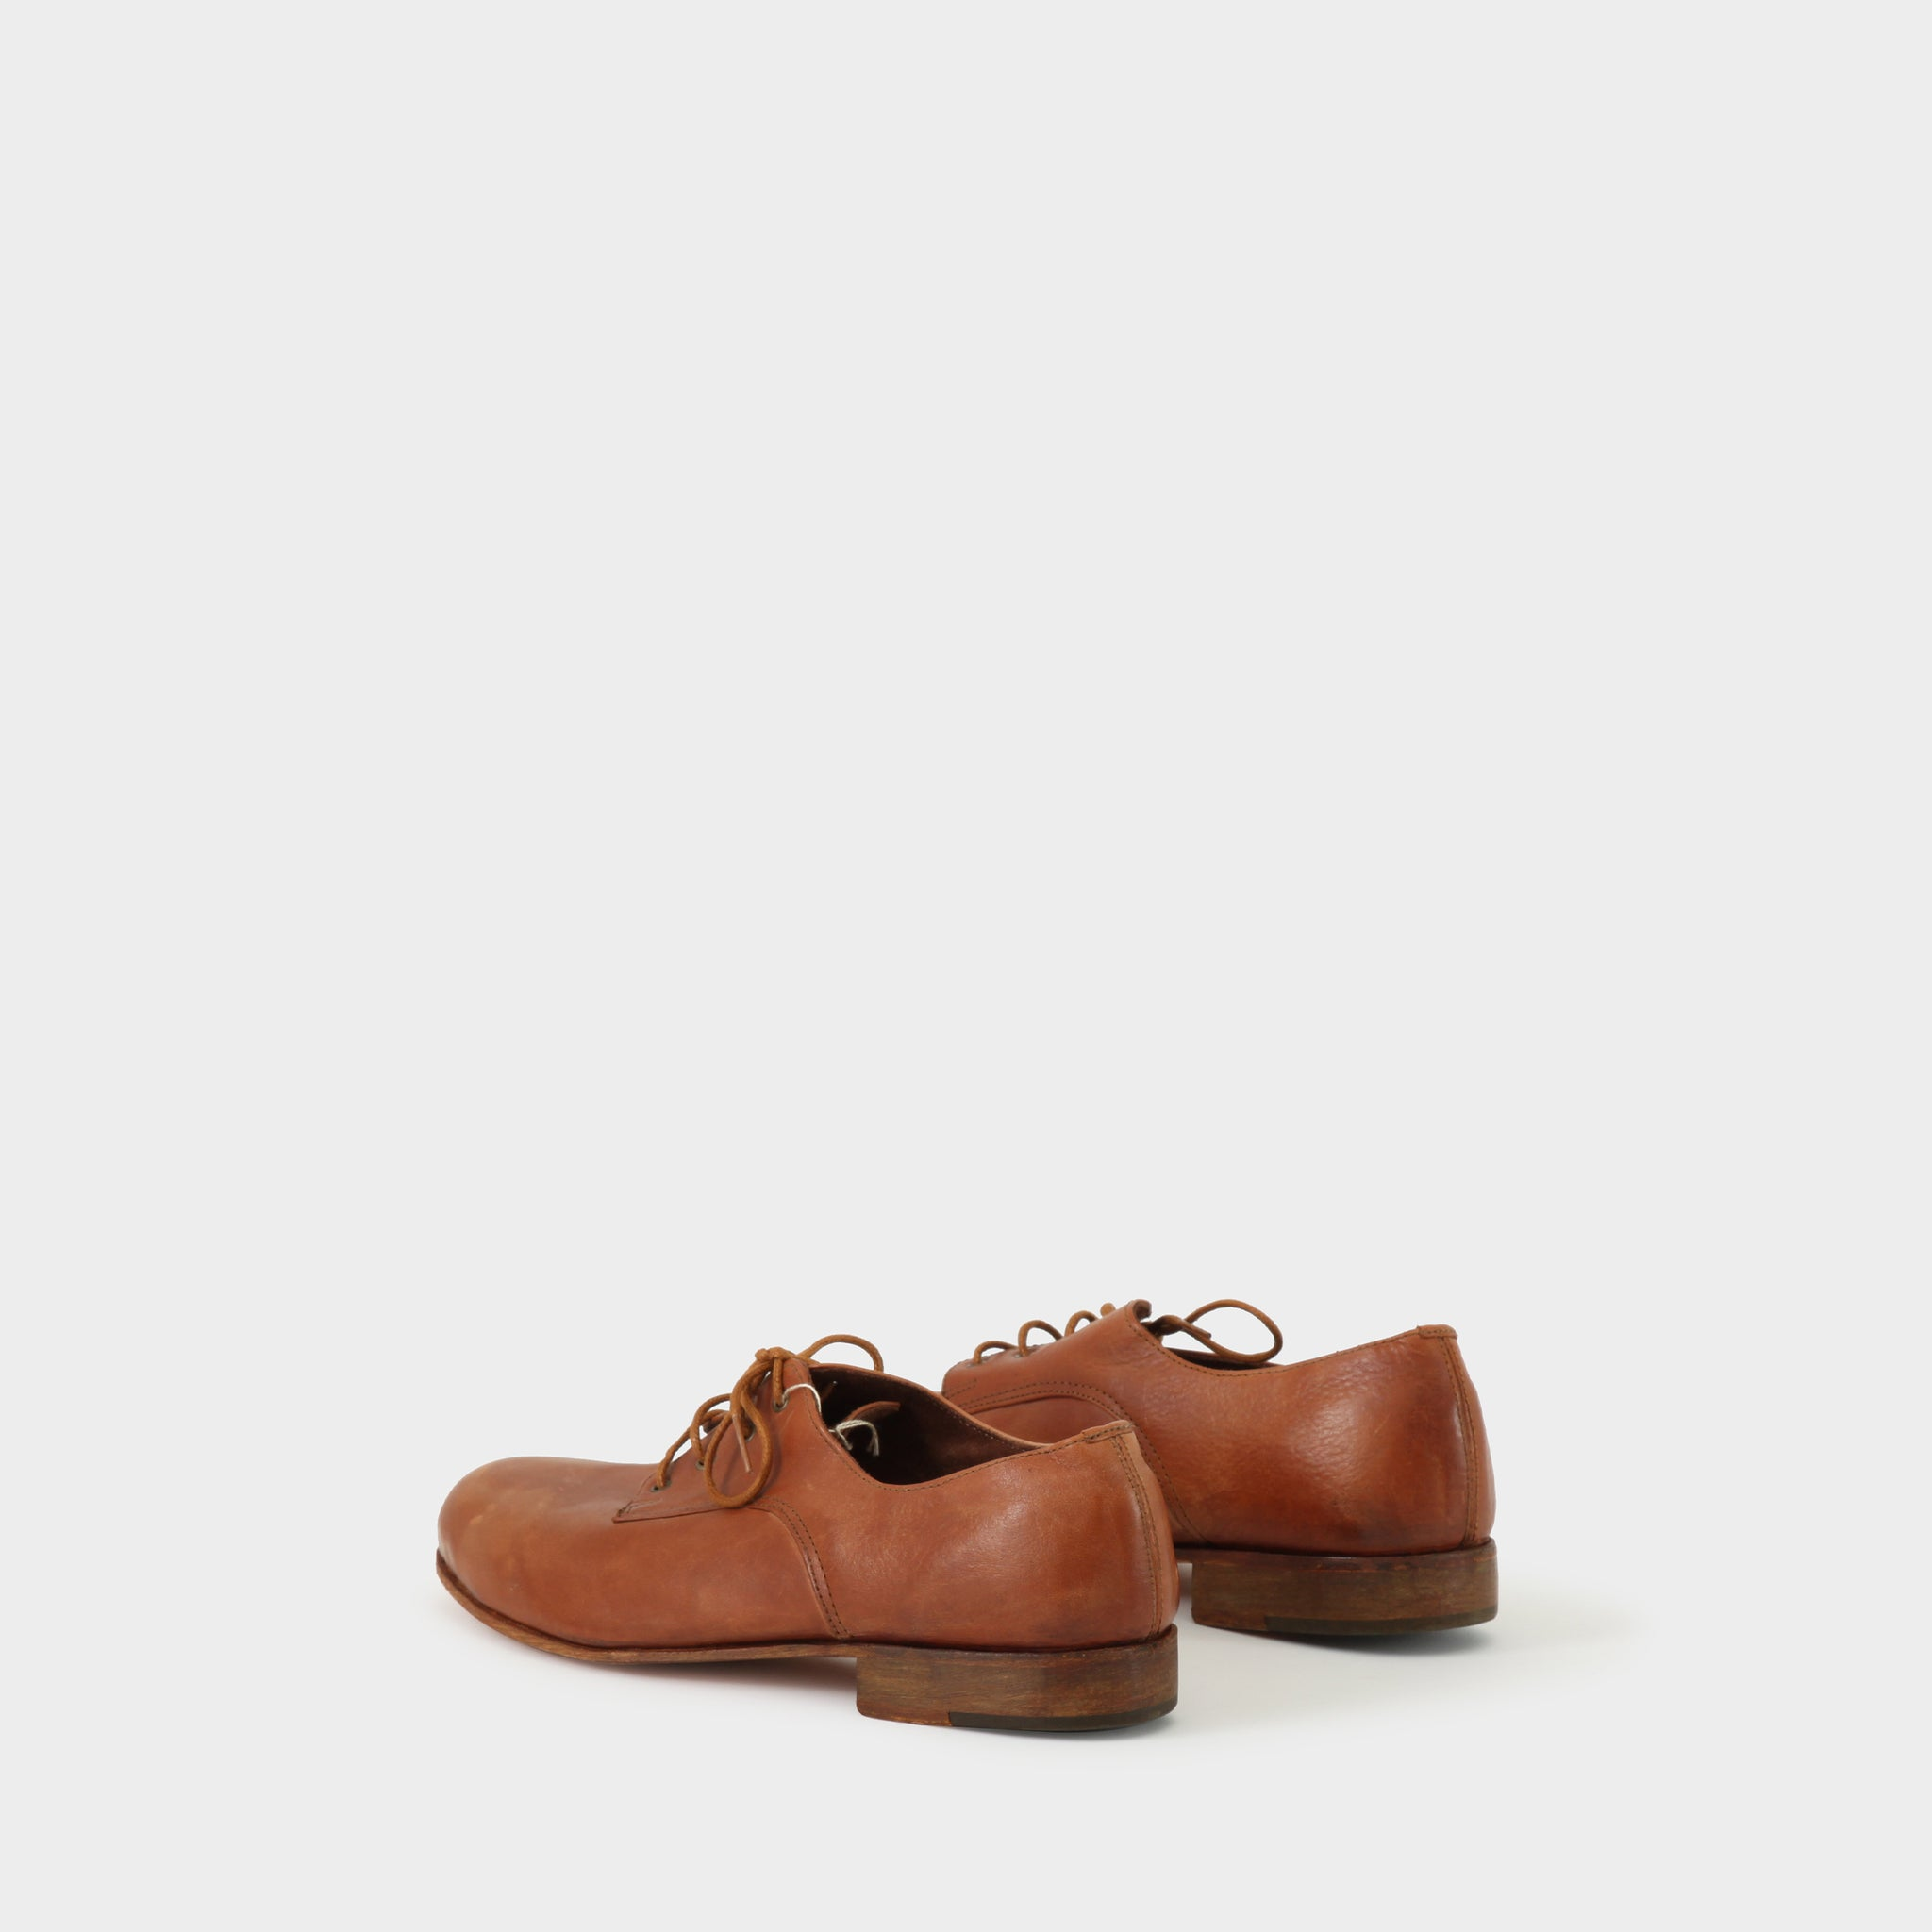 Geoffrey B Small Handmade Tan Leather Derby